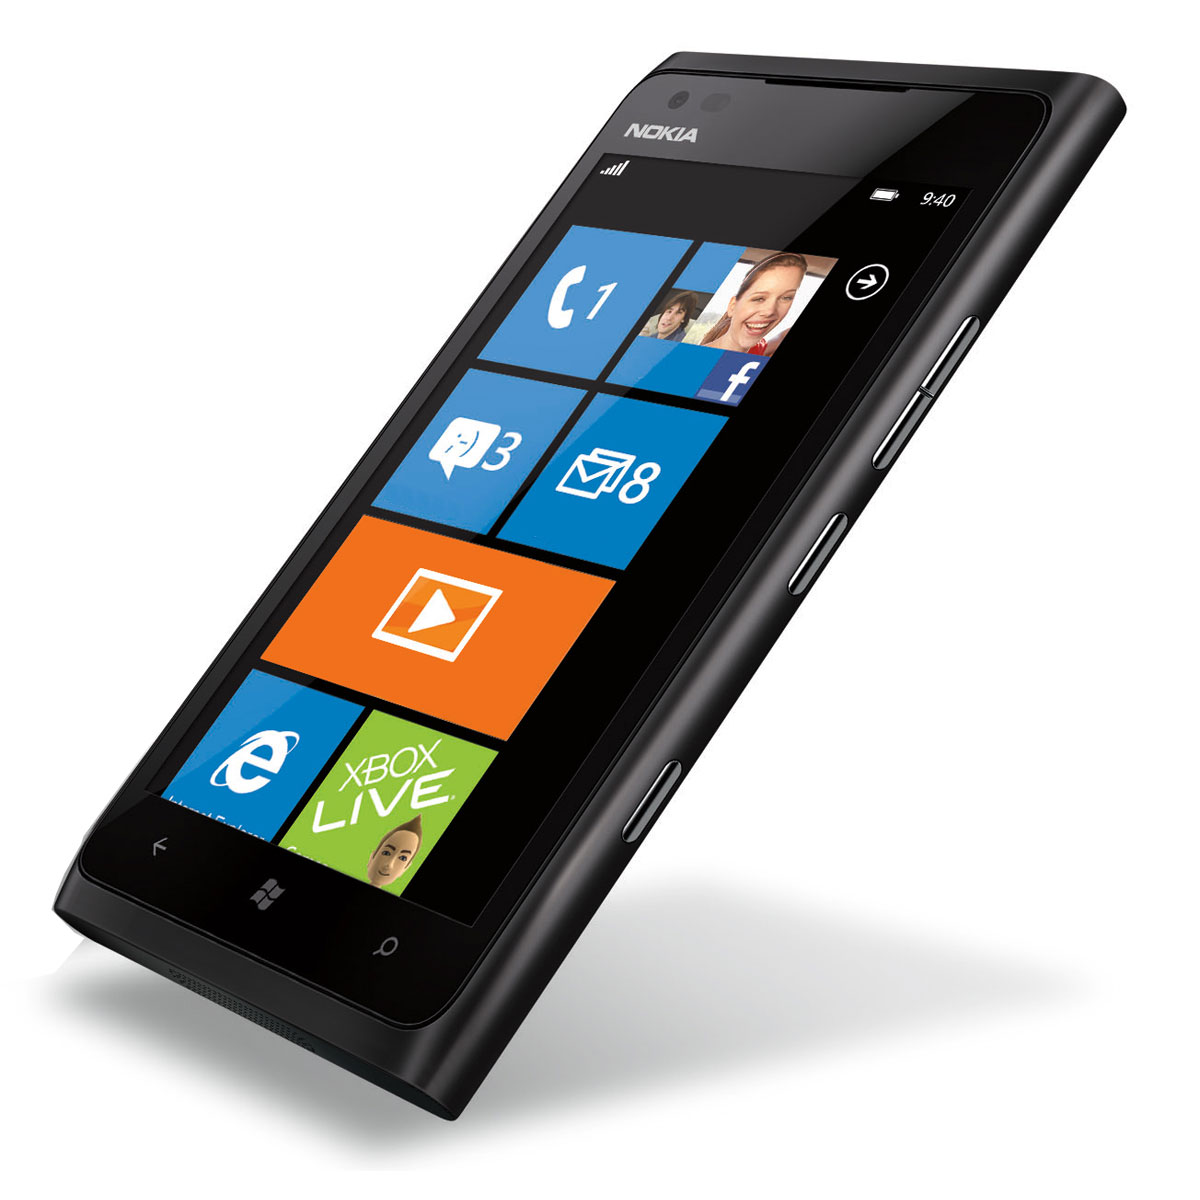 nokia lumia 900 noir mobile smartphone nokia sur. Black Bedroom Furniture Sets. Home Design Ideas